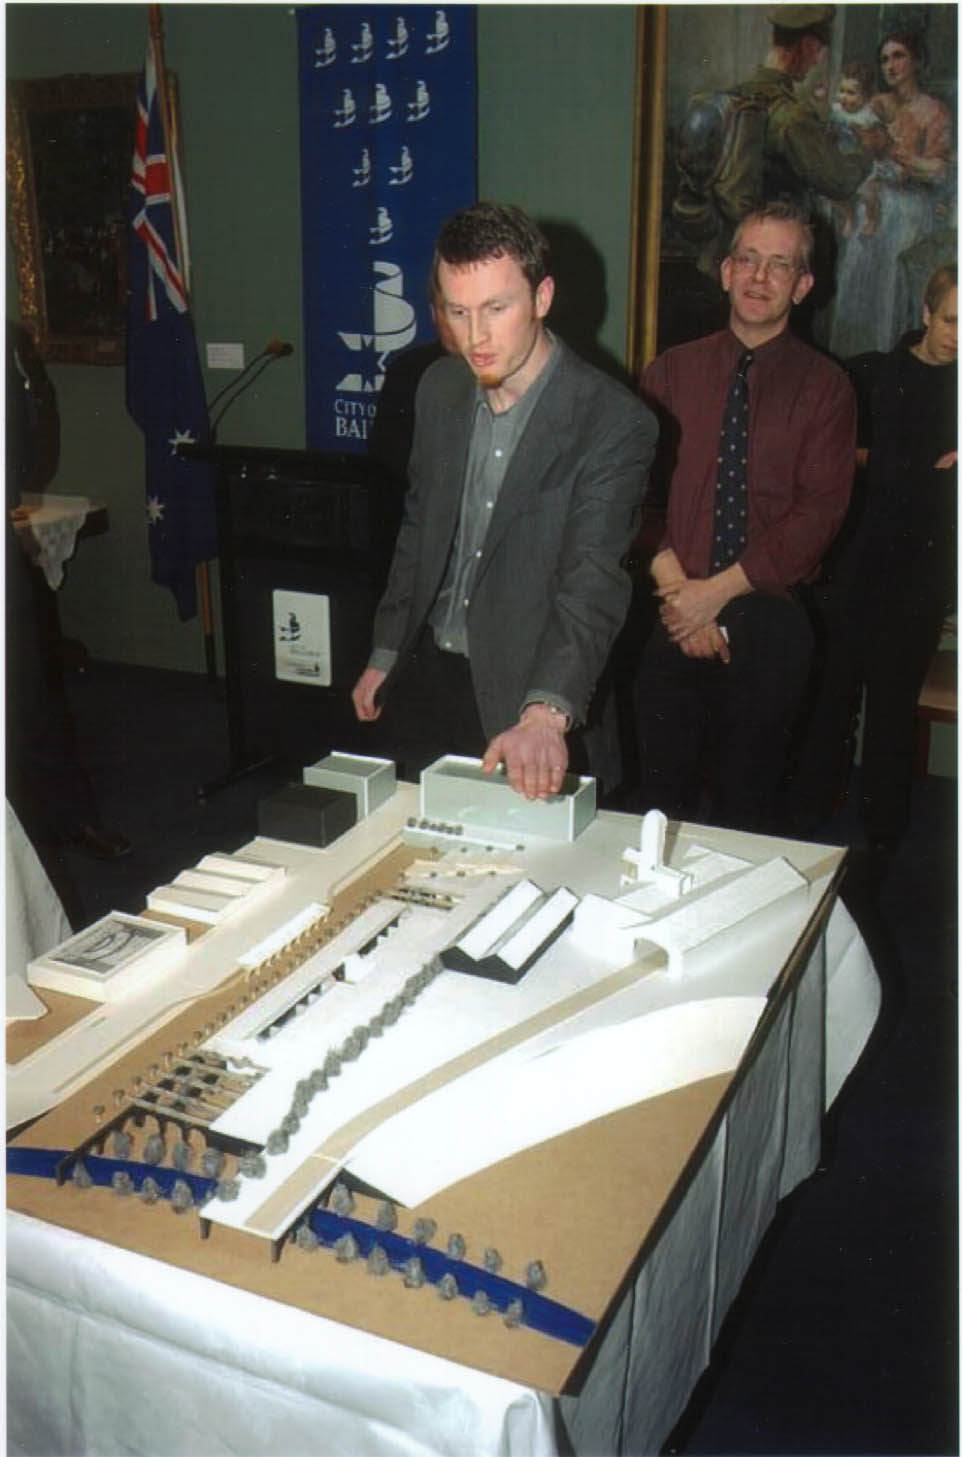 A younger, more idealistic me presenting the scheme at a public exhibition in the Ballarat Town Hall.